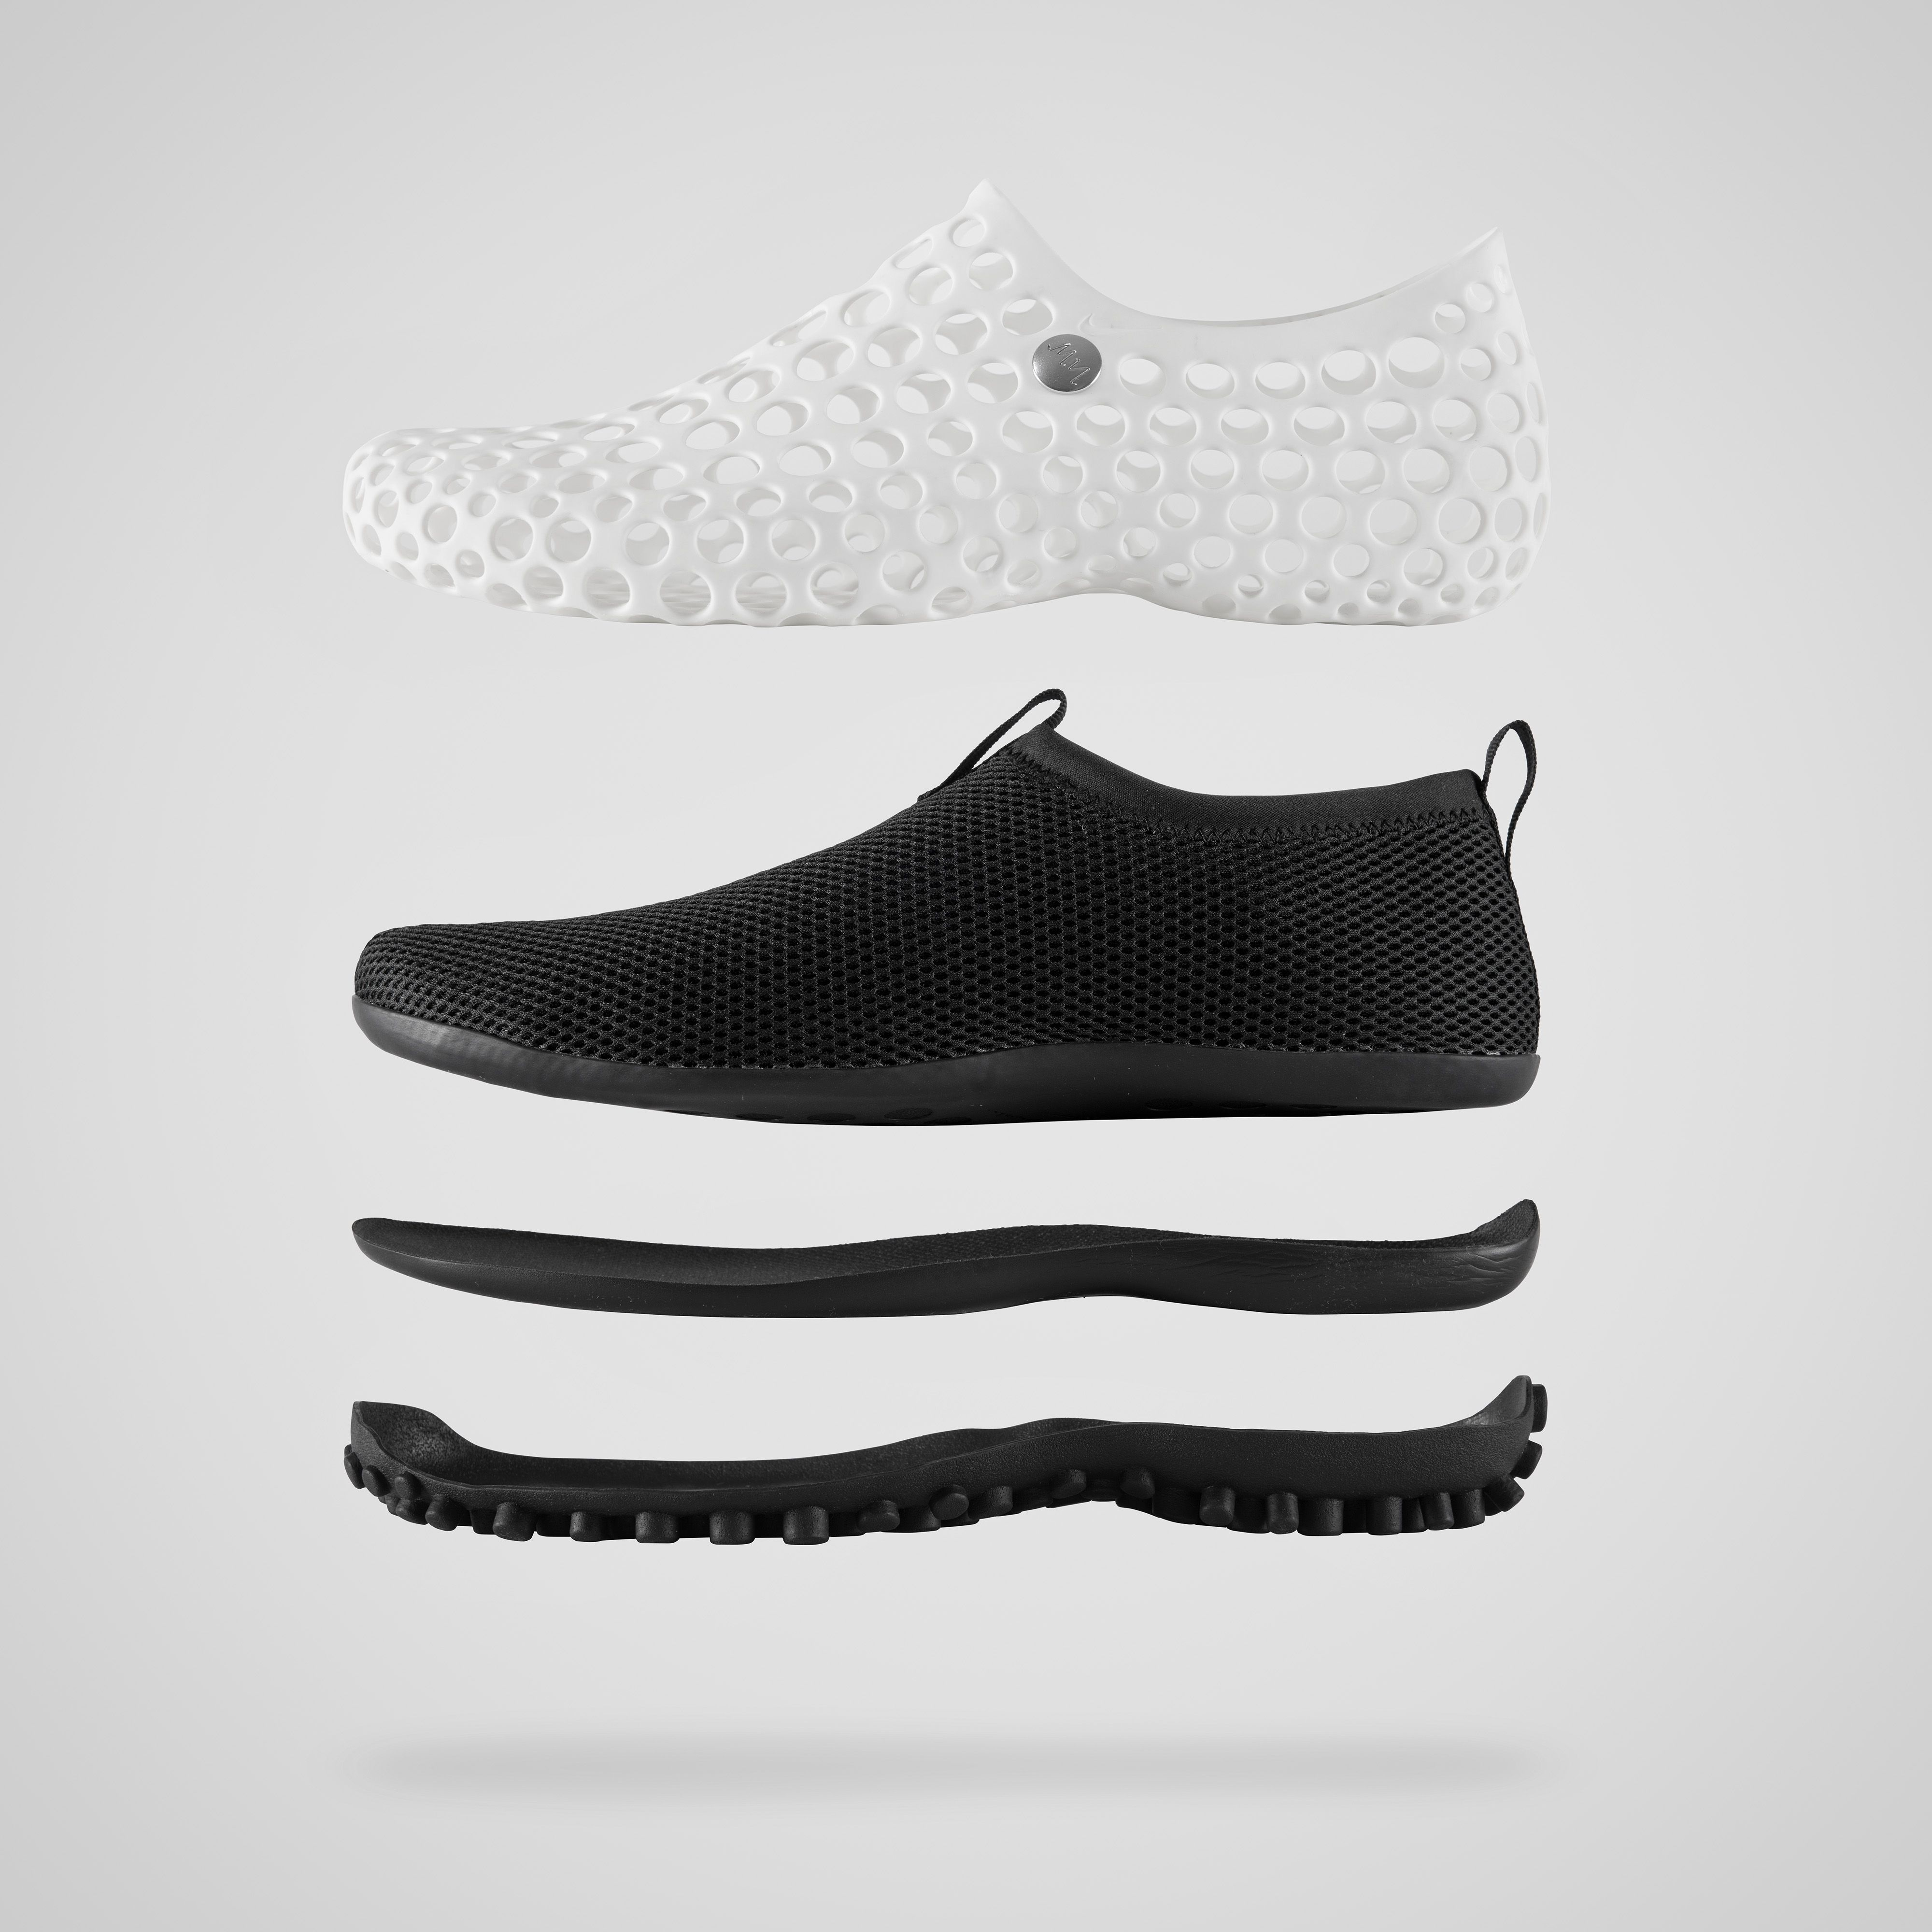 e70d87066823 Even 10 Years Later Marc Newson s Nike ZVEZDOCHKA Looks Ahead of Its Time